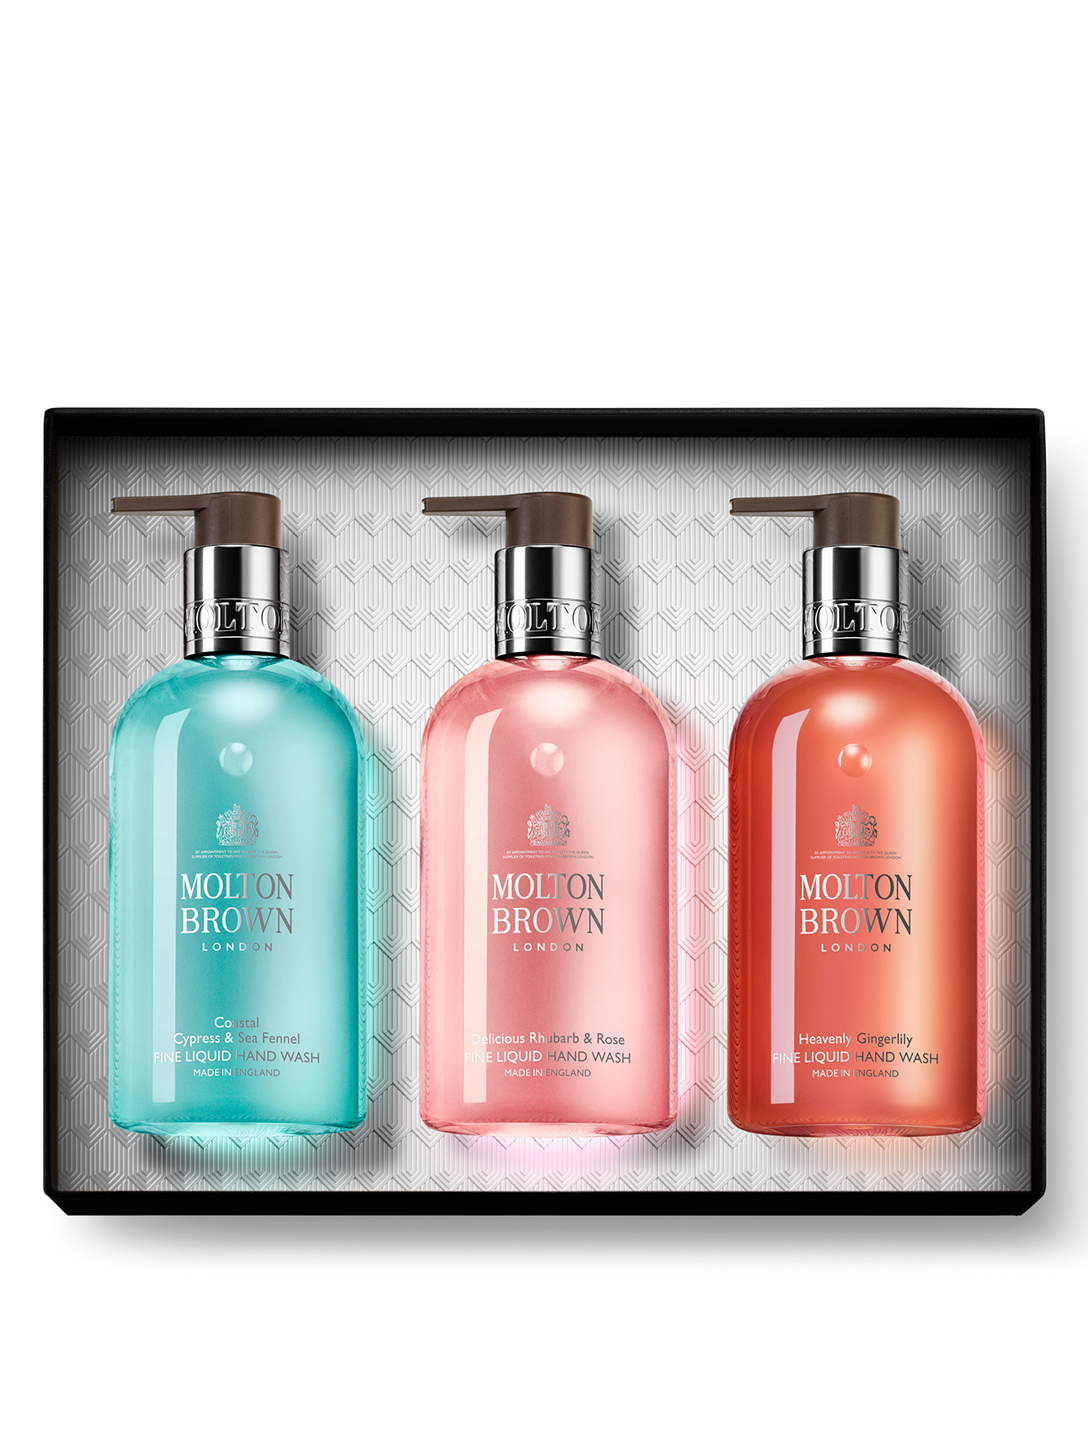 MOLTON BROWN Floral & Aromatic Hand Wash Trio Gift Set Beauty